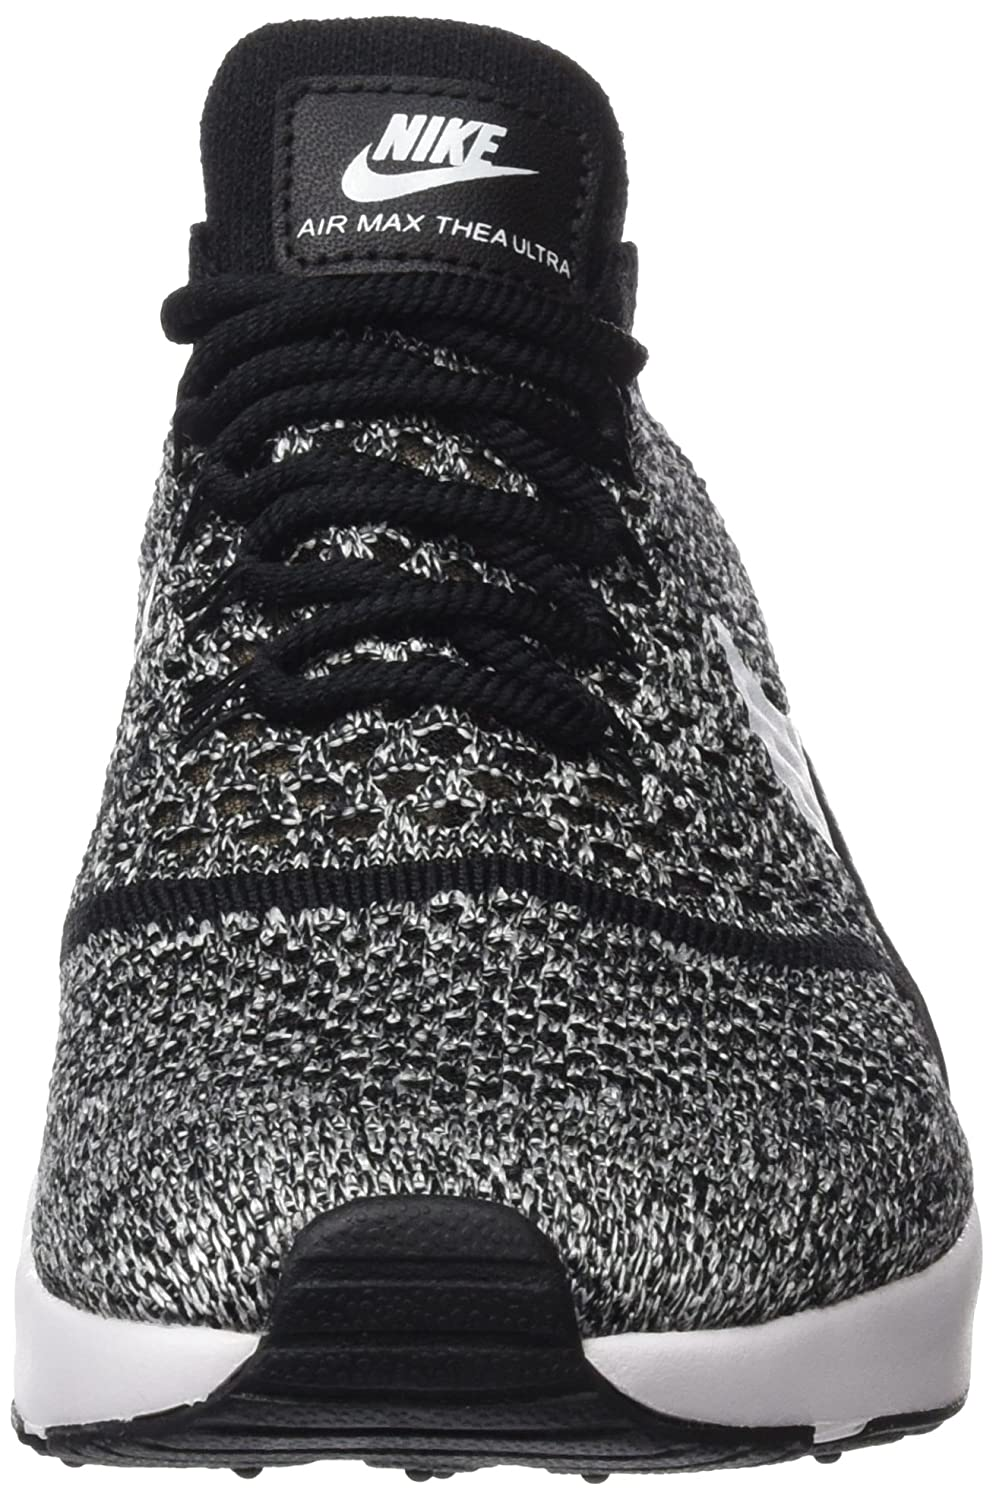 Amazon.com: Nike Air Max Thea Ultra Flyknit Womens Shoe (12, Black/White): Sports & Outdoors